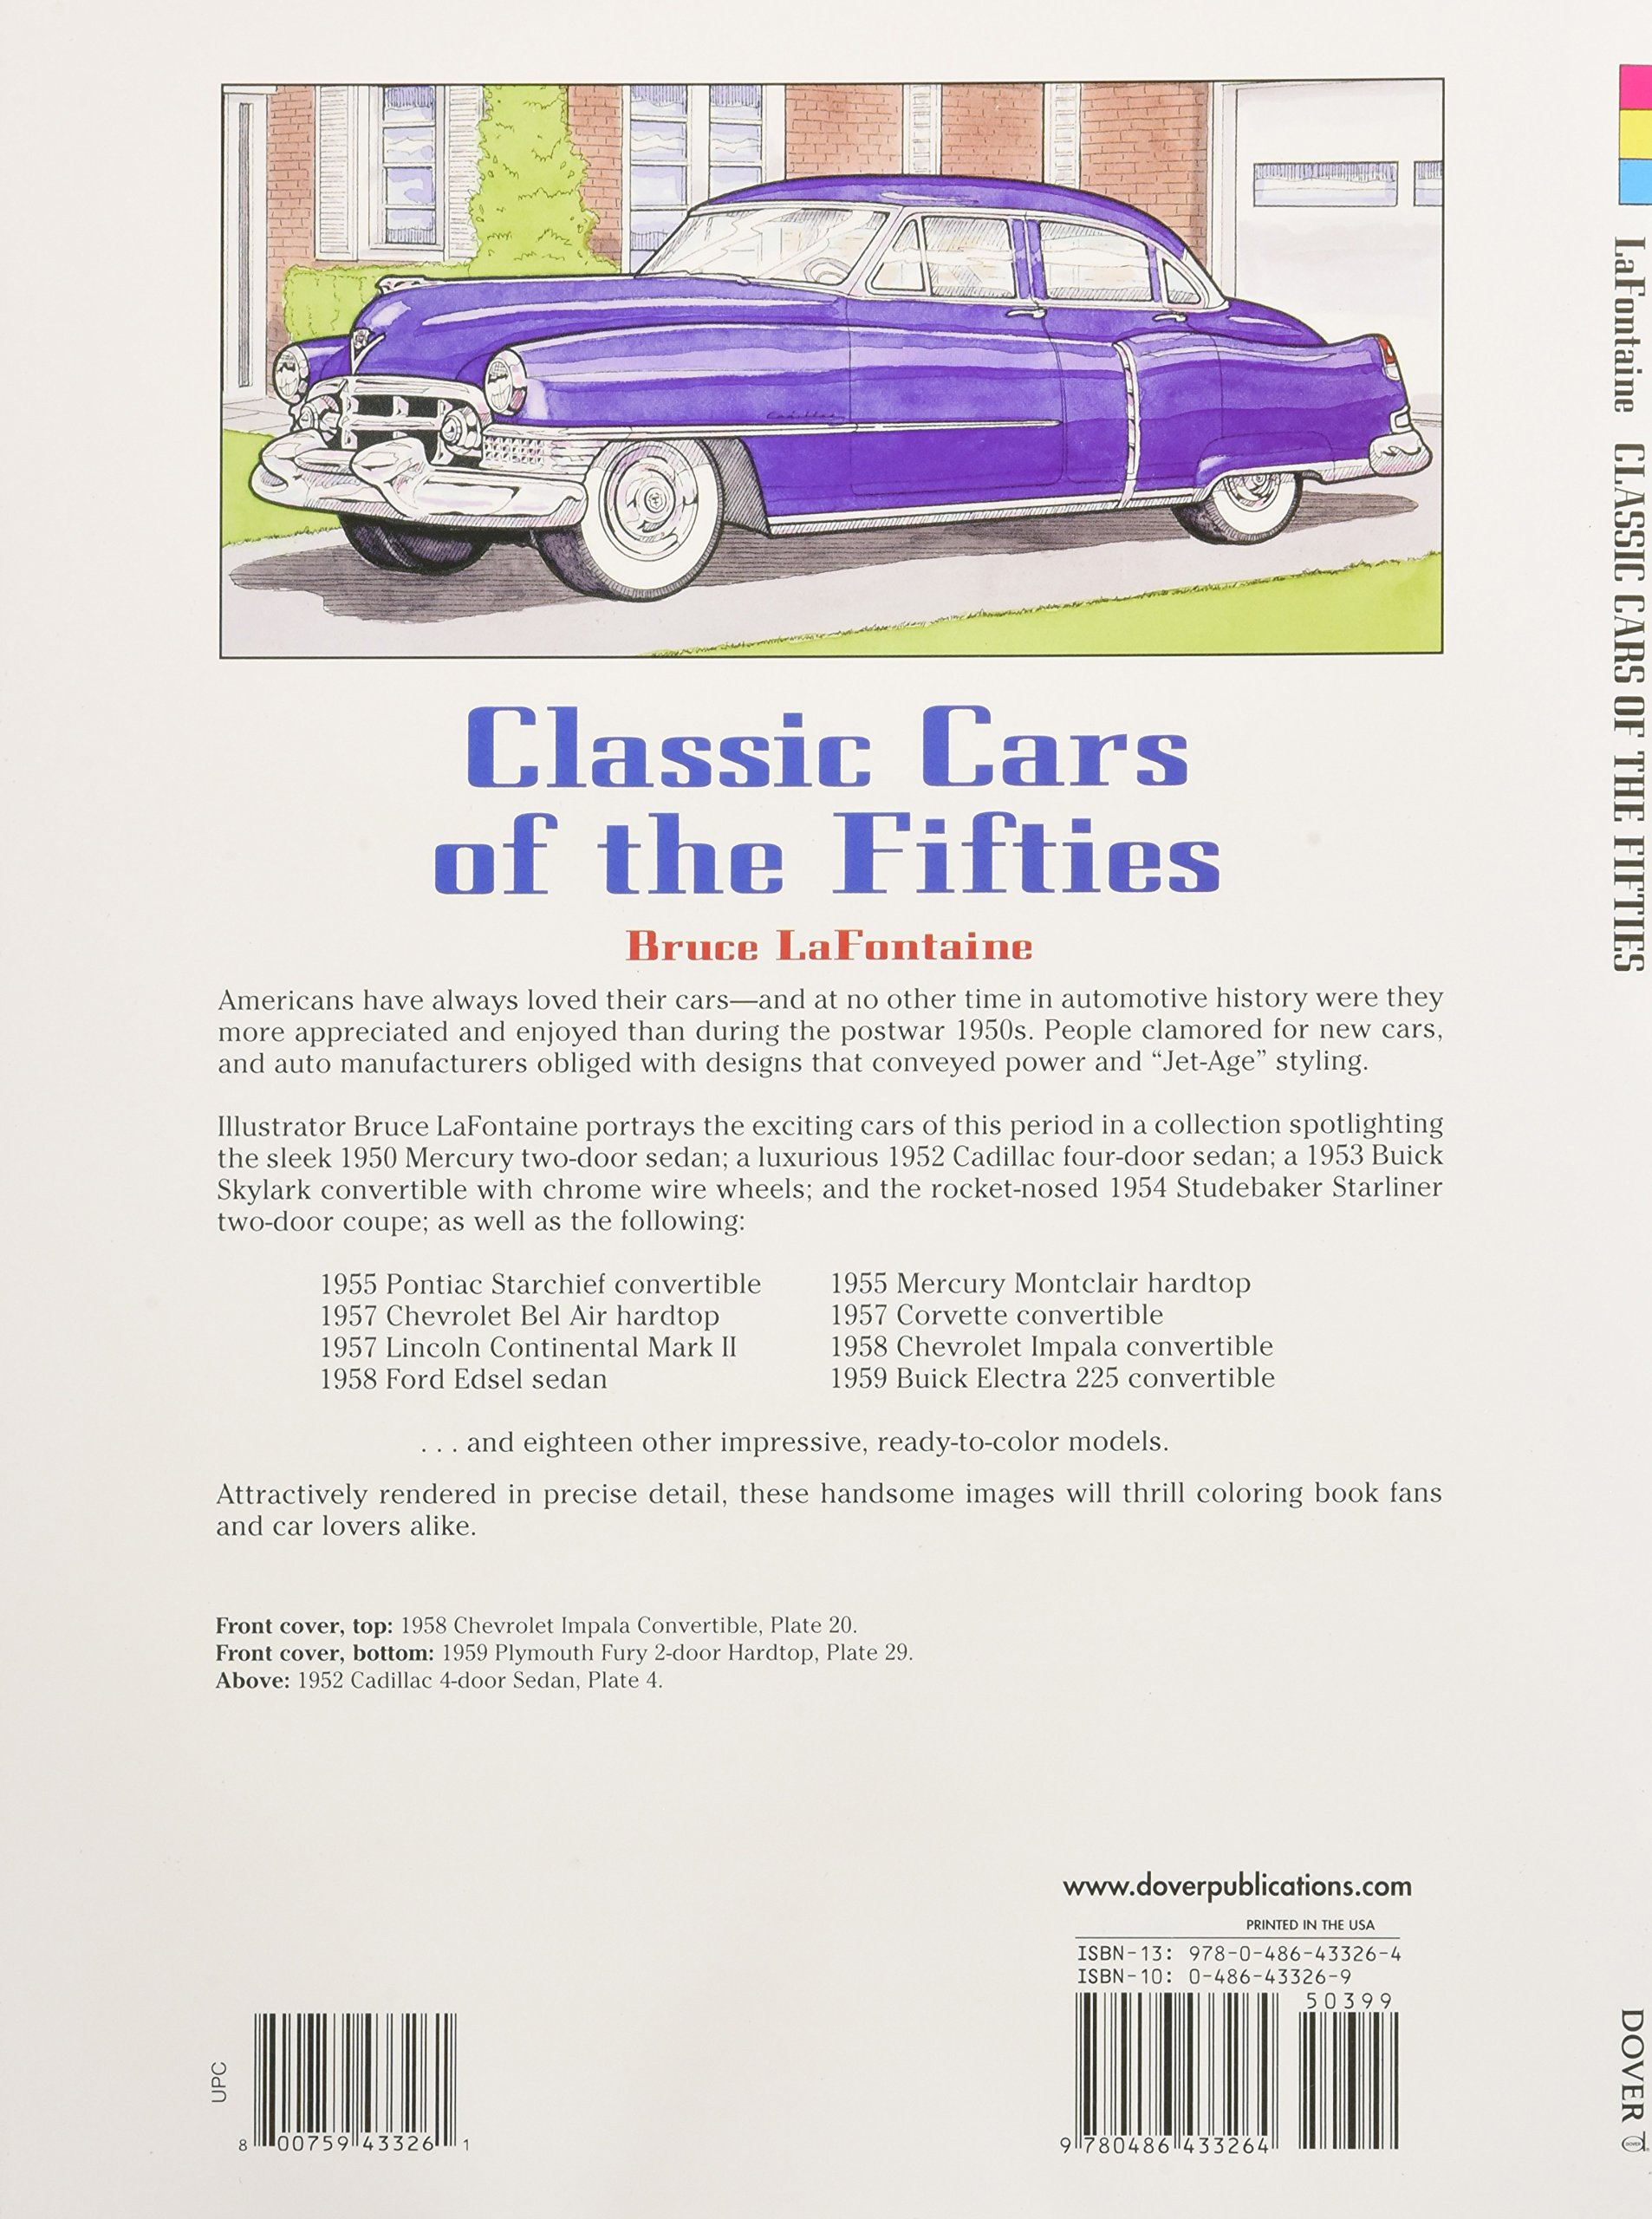 Classic Cars Of The Fifties Bruce Lafontaine 9780486433264 Books 1957 Chevy Bel Air Convertible Colors